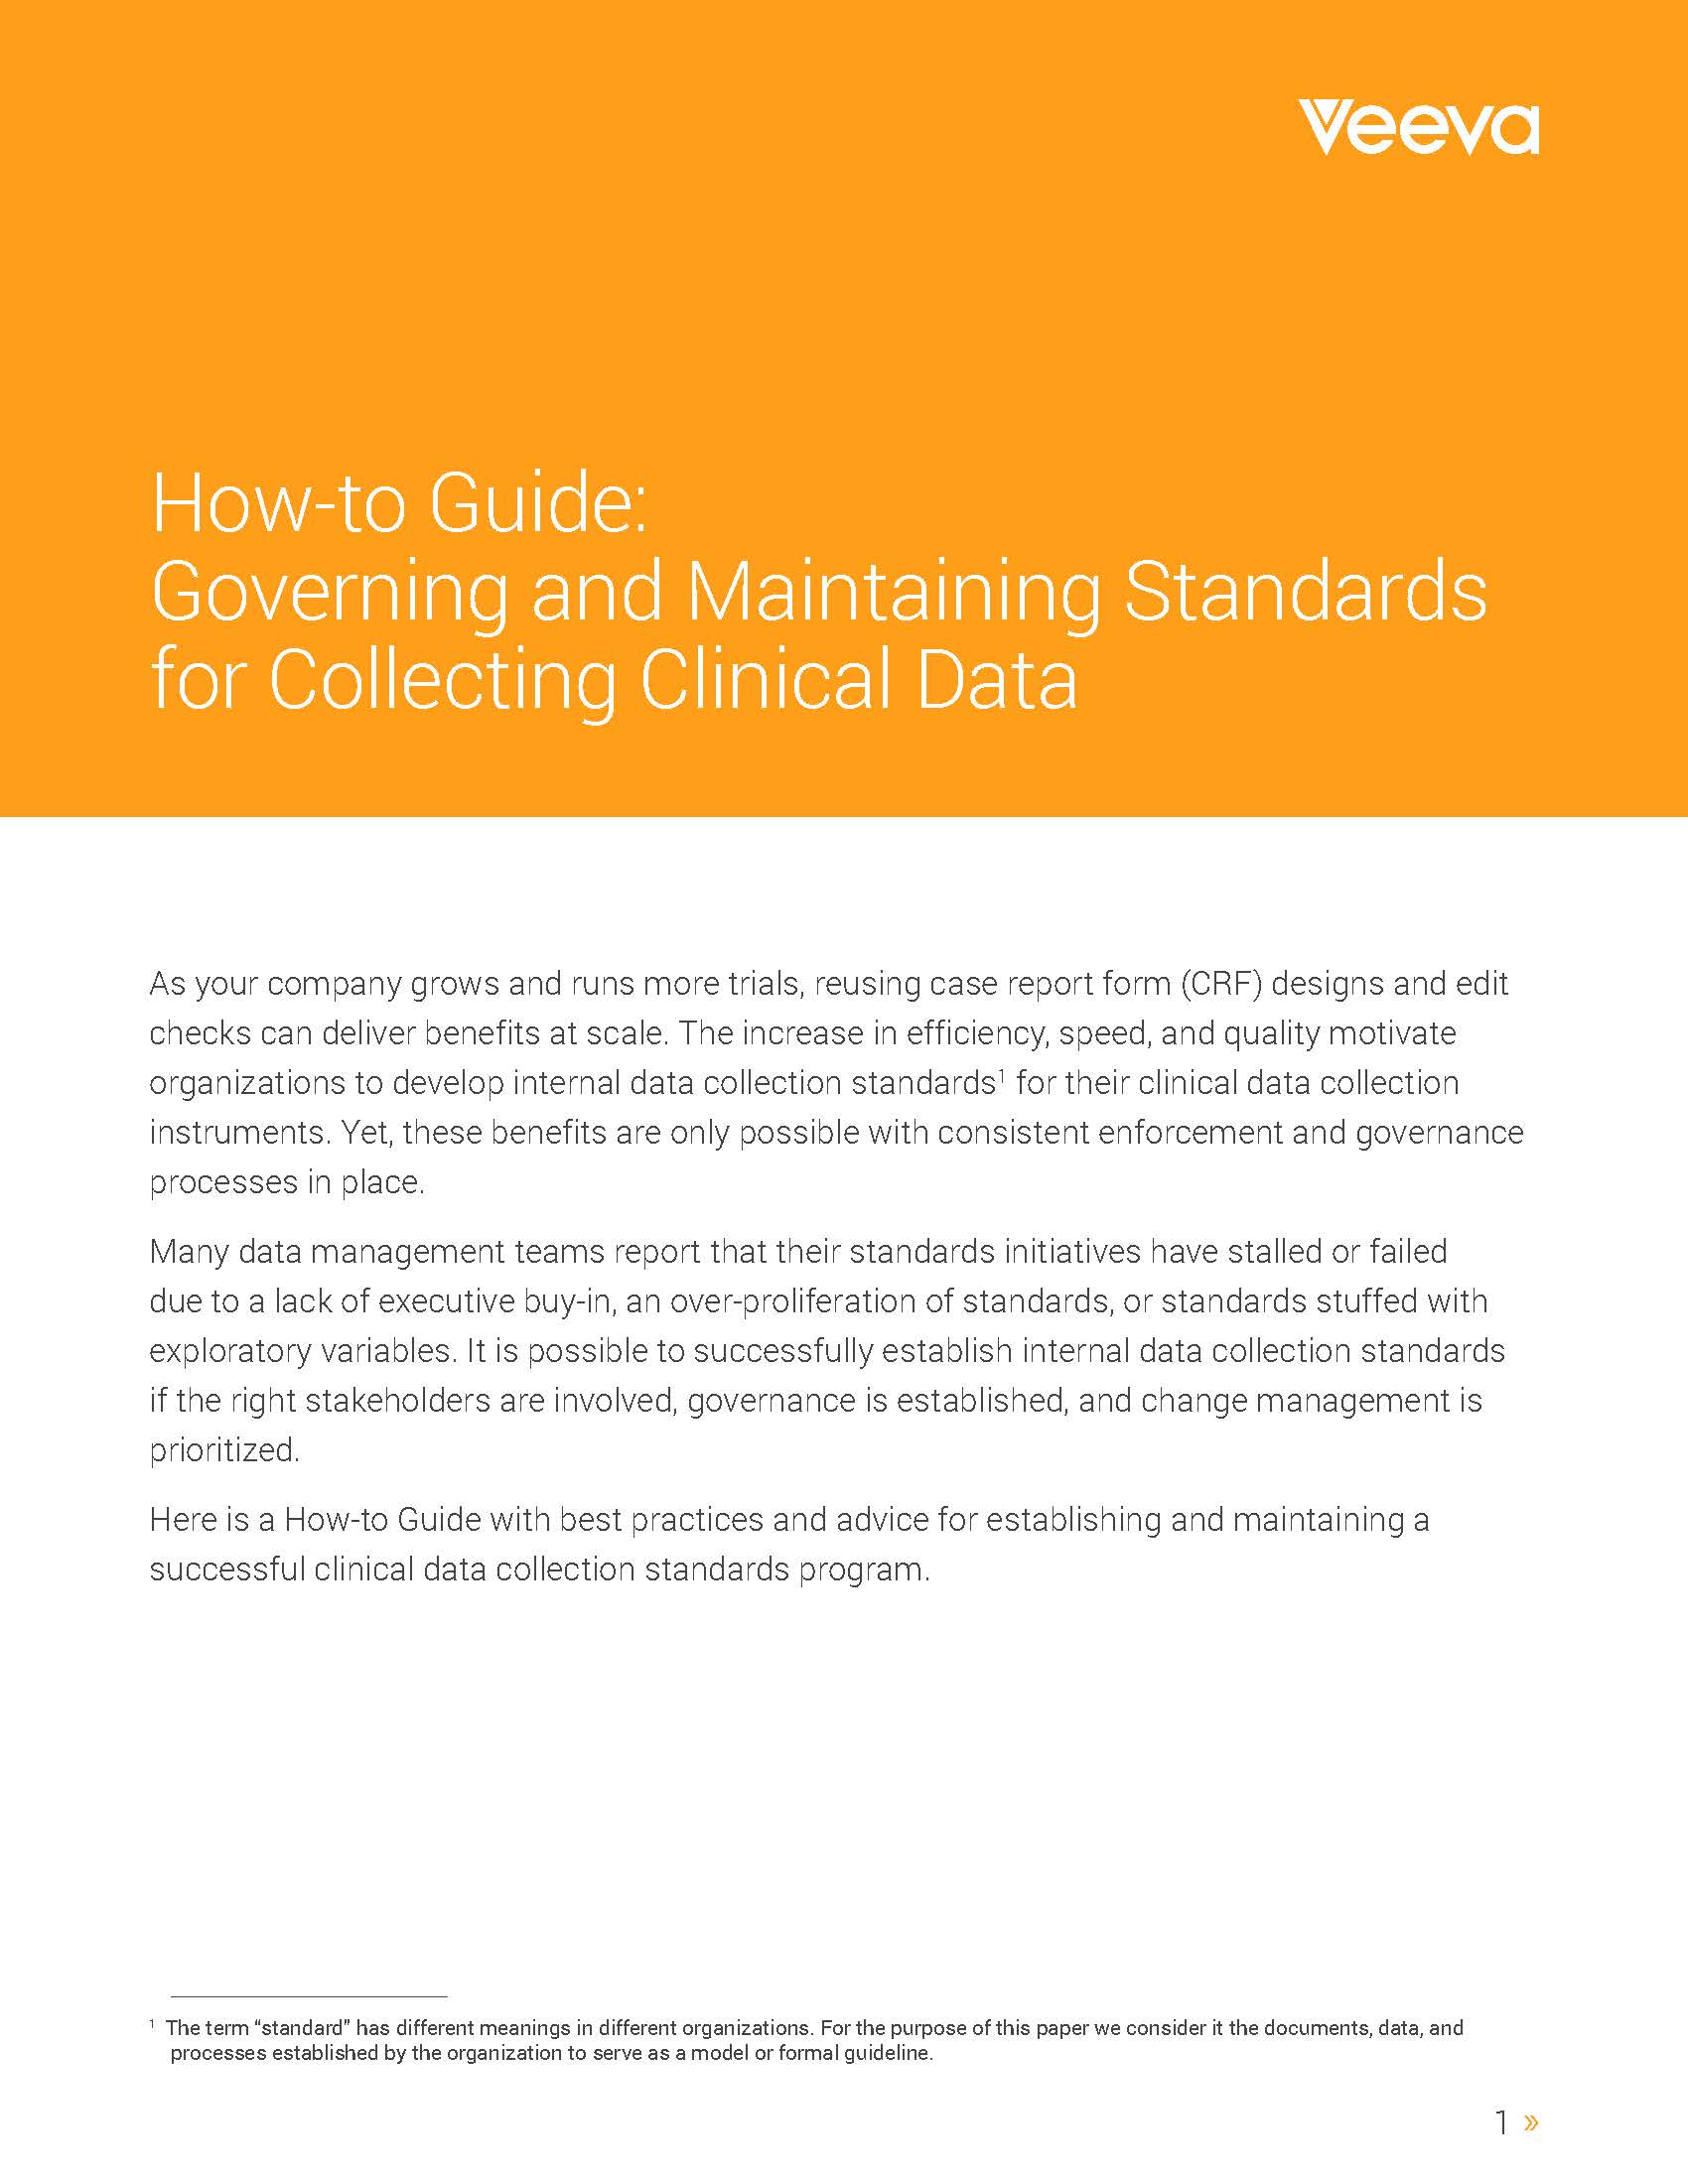 How-to Guide: Governing and Maintaining Standards for Collecting Clinical Data